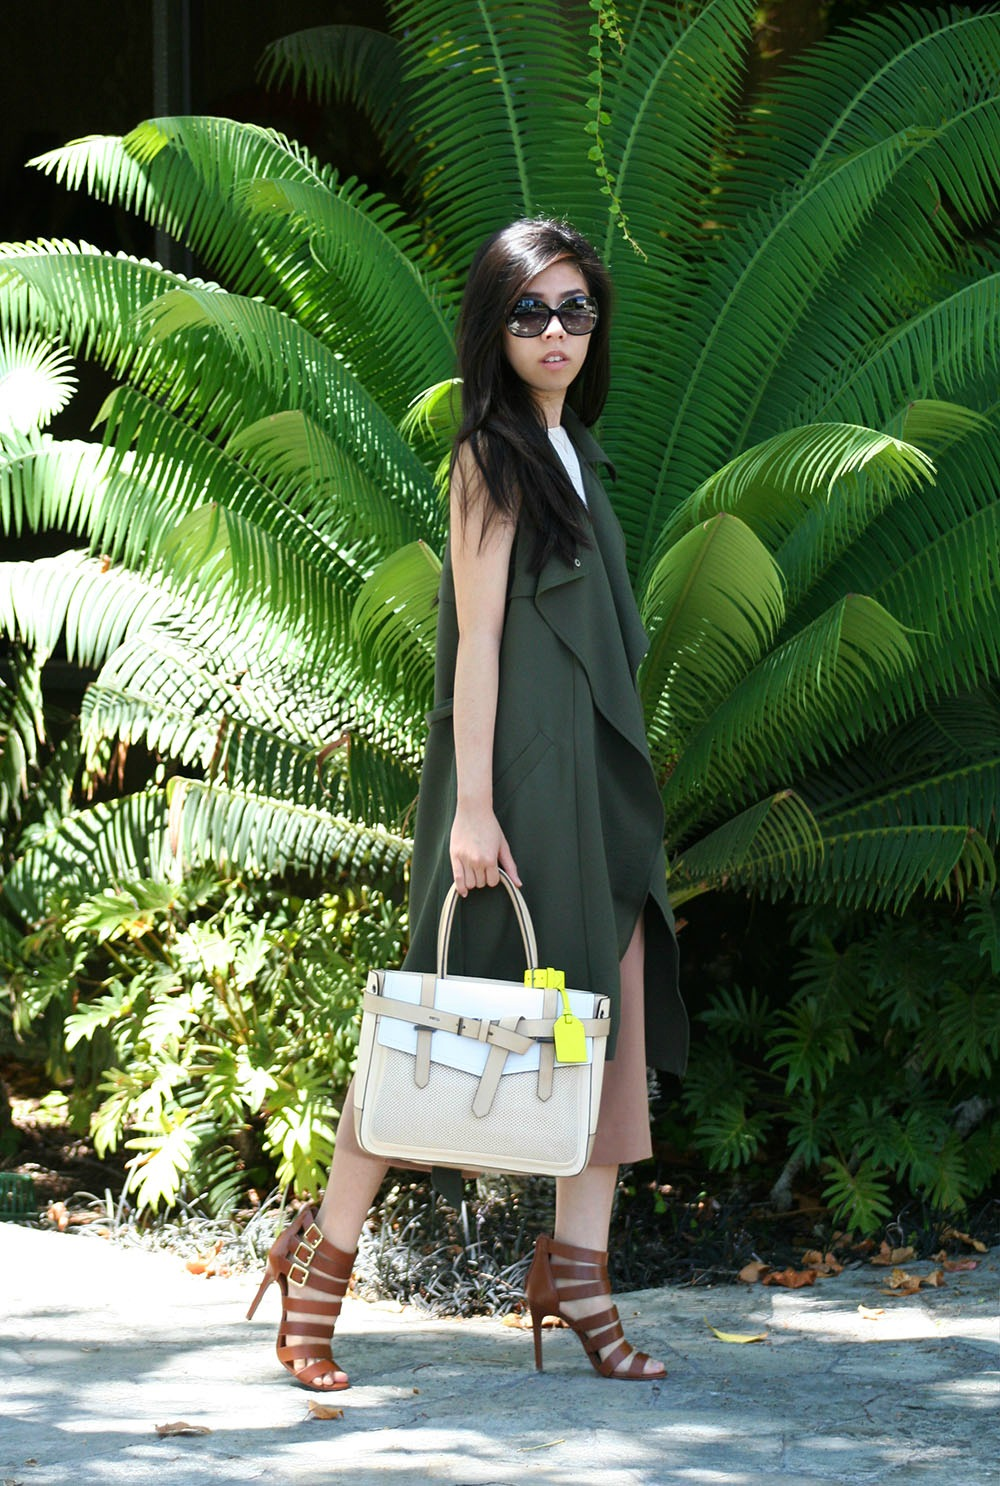 Adrienne Nguyen_Invictus_What to Wear for a lunch date_California Fashion Blog_JORD WAtches_Skeleton Watch_Women's Watches/></a></div> <br /> <!-- SHOPSTYLE COLLECTIVE WIDGET CODE START --> <br /> <div class=